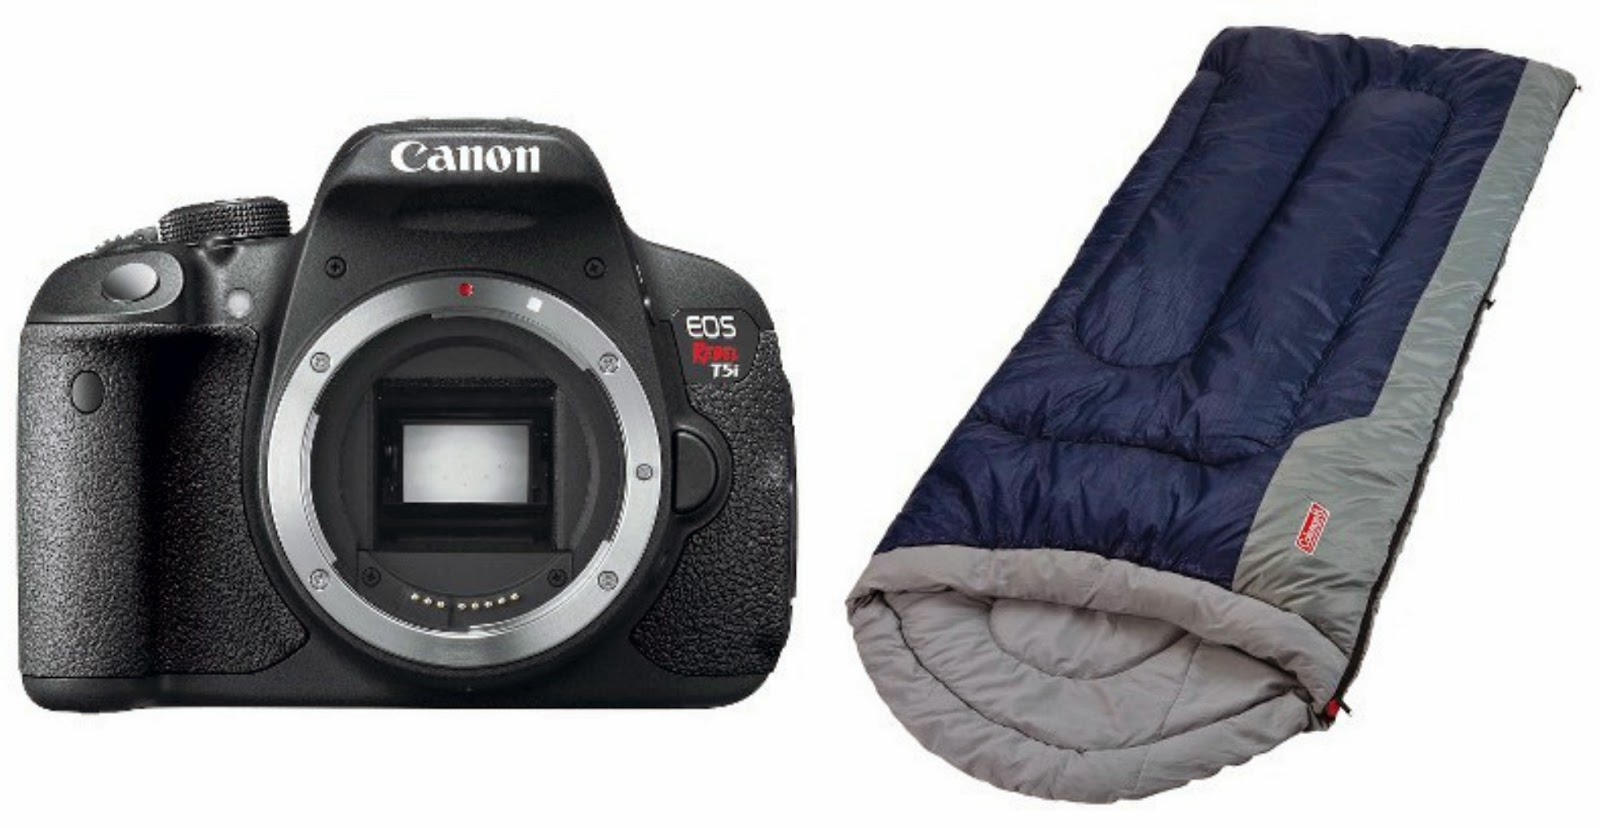 canon camera sleeping bag